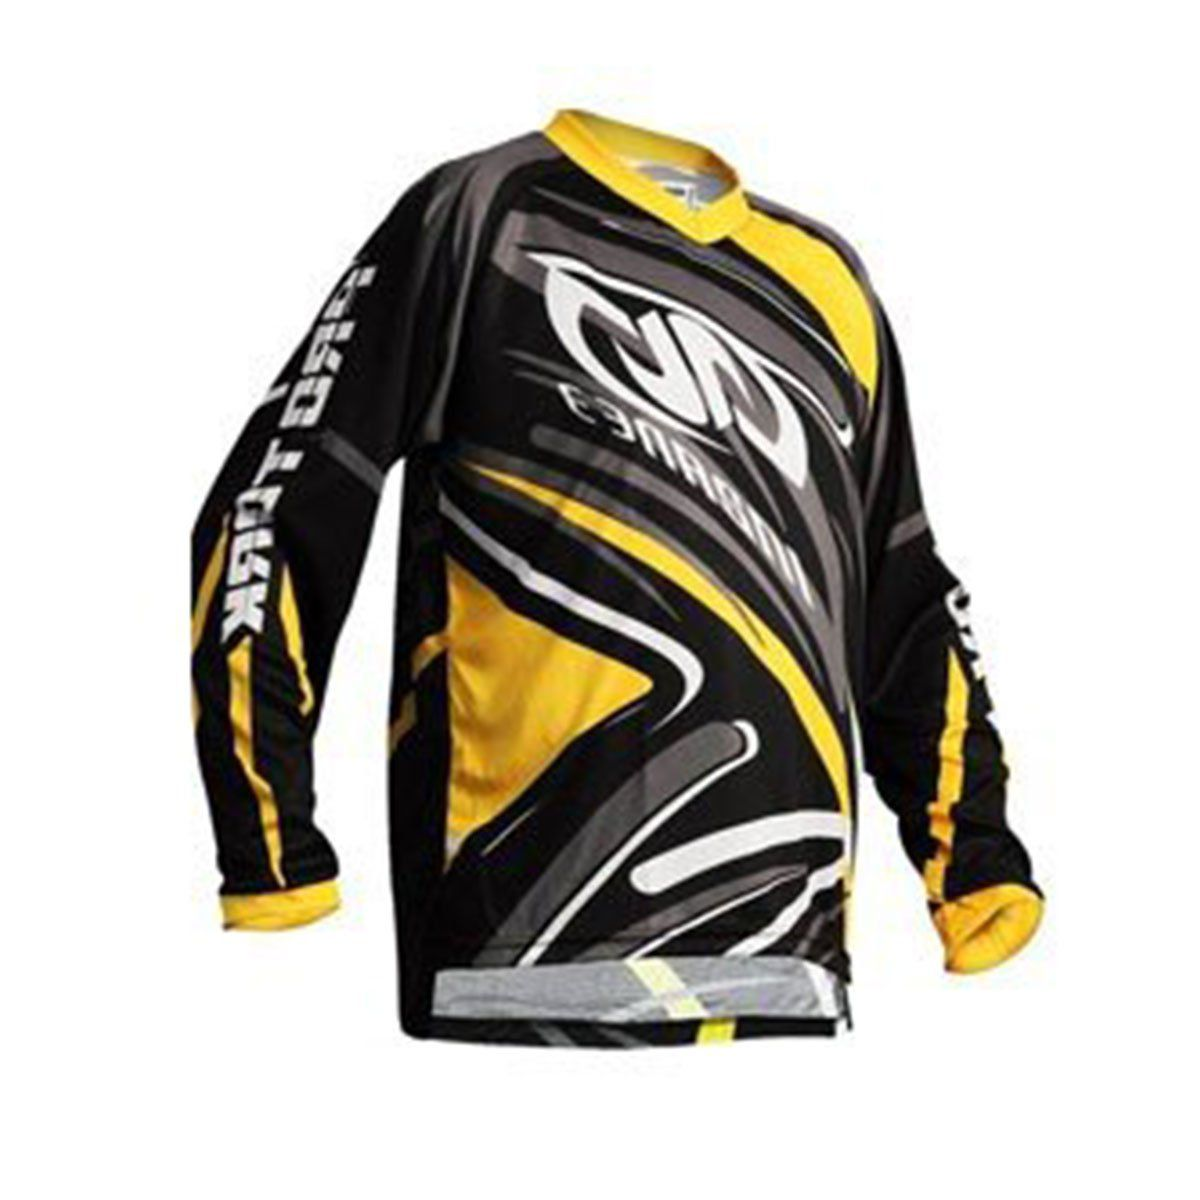 Camisa Protork Modelo Insane 3 Black / Yellow